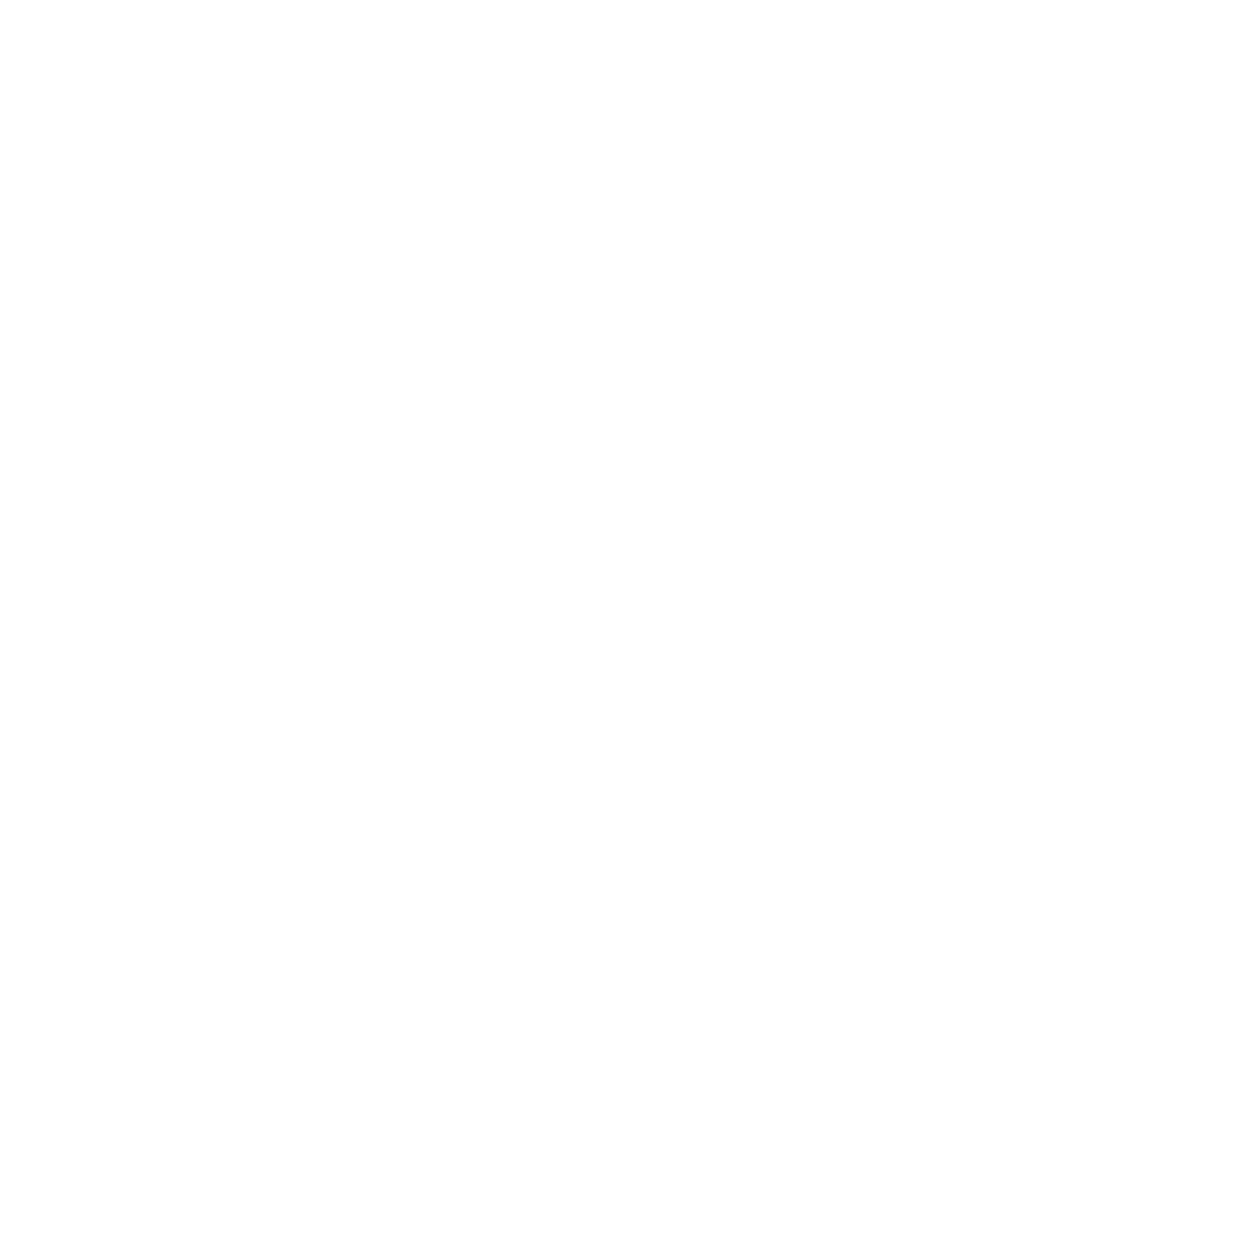 GD USA American Web Design Award Winner 2017